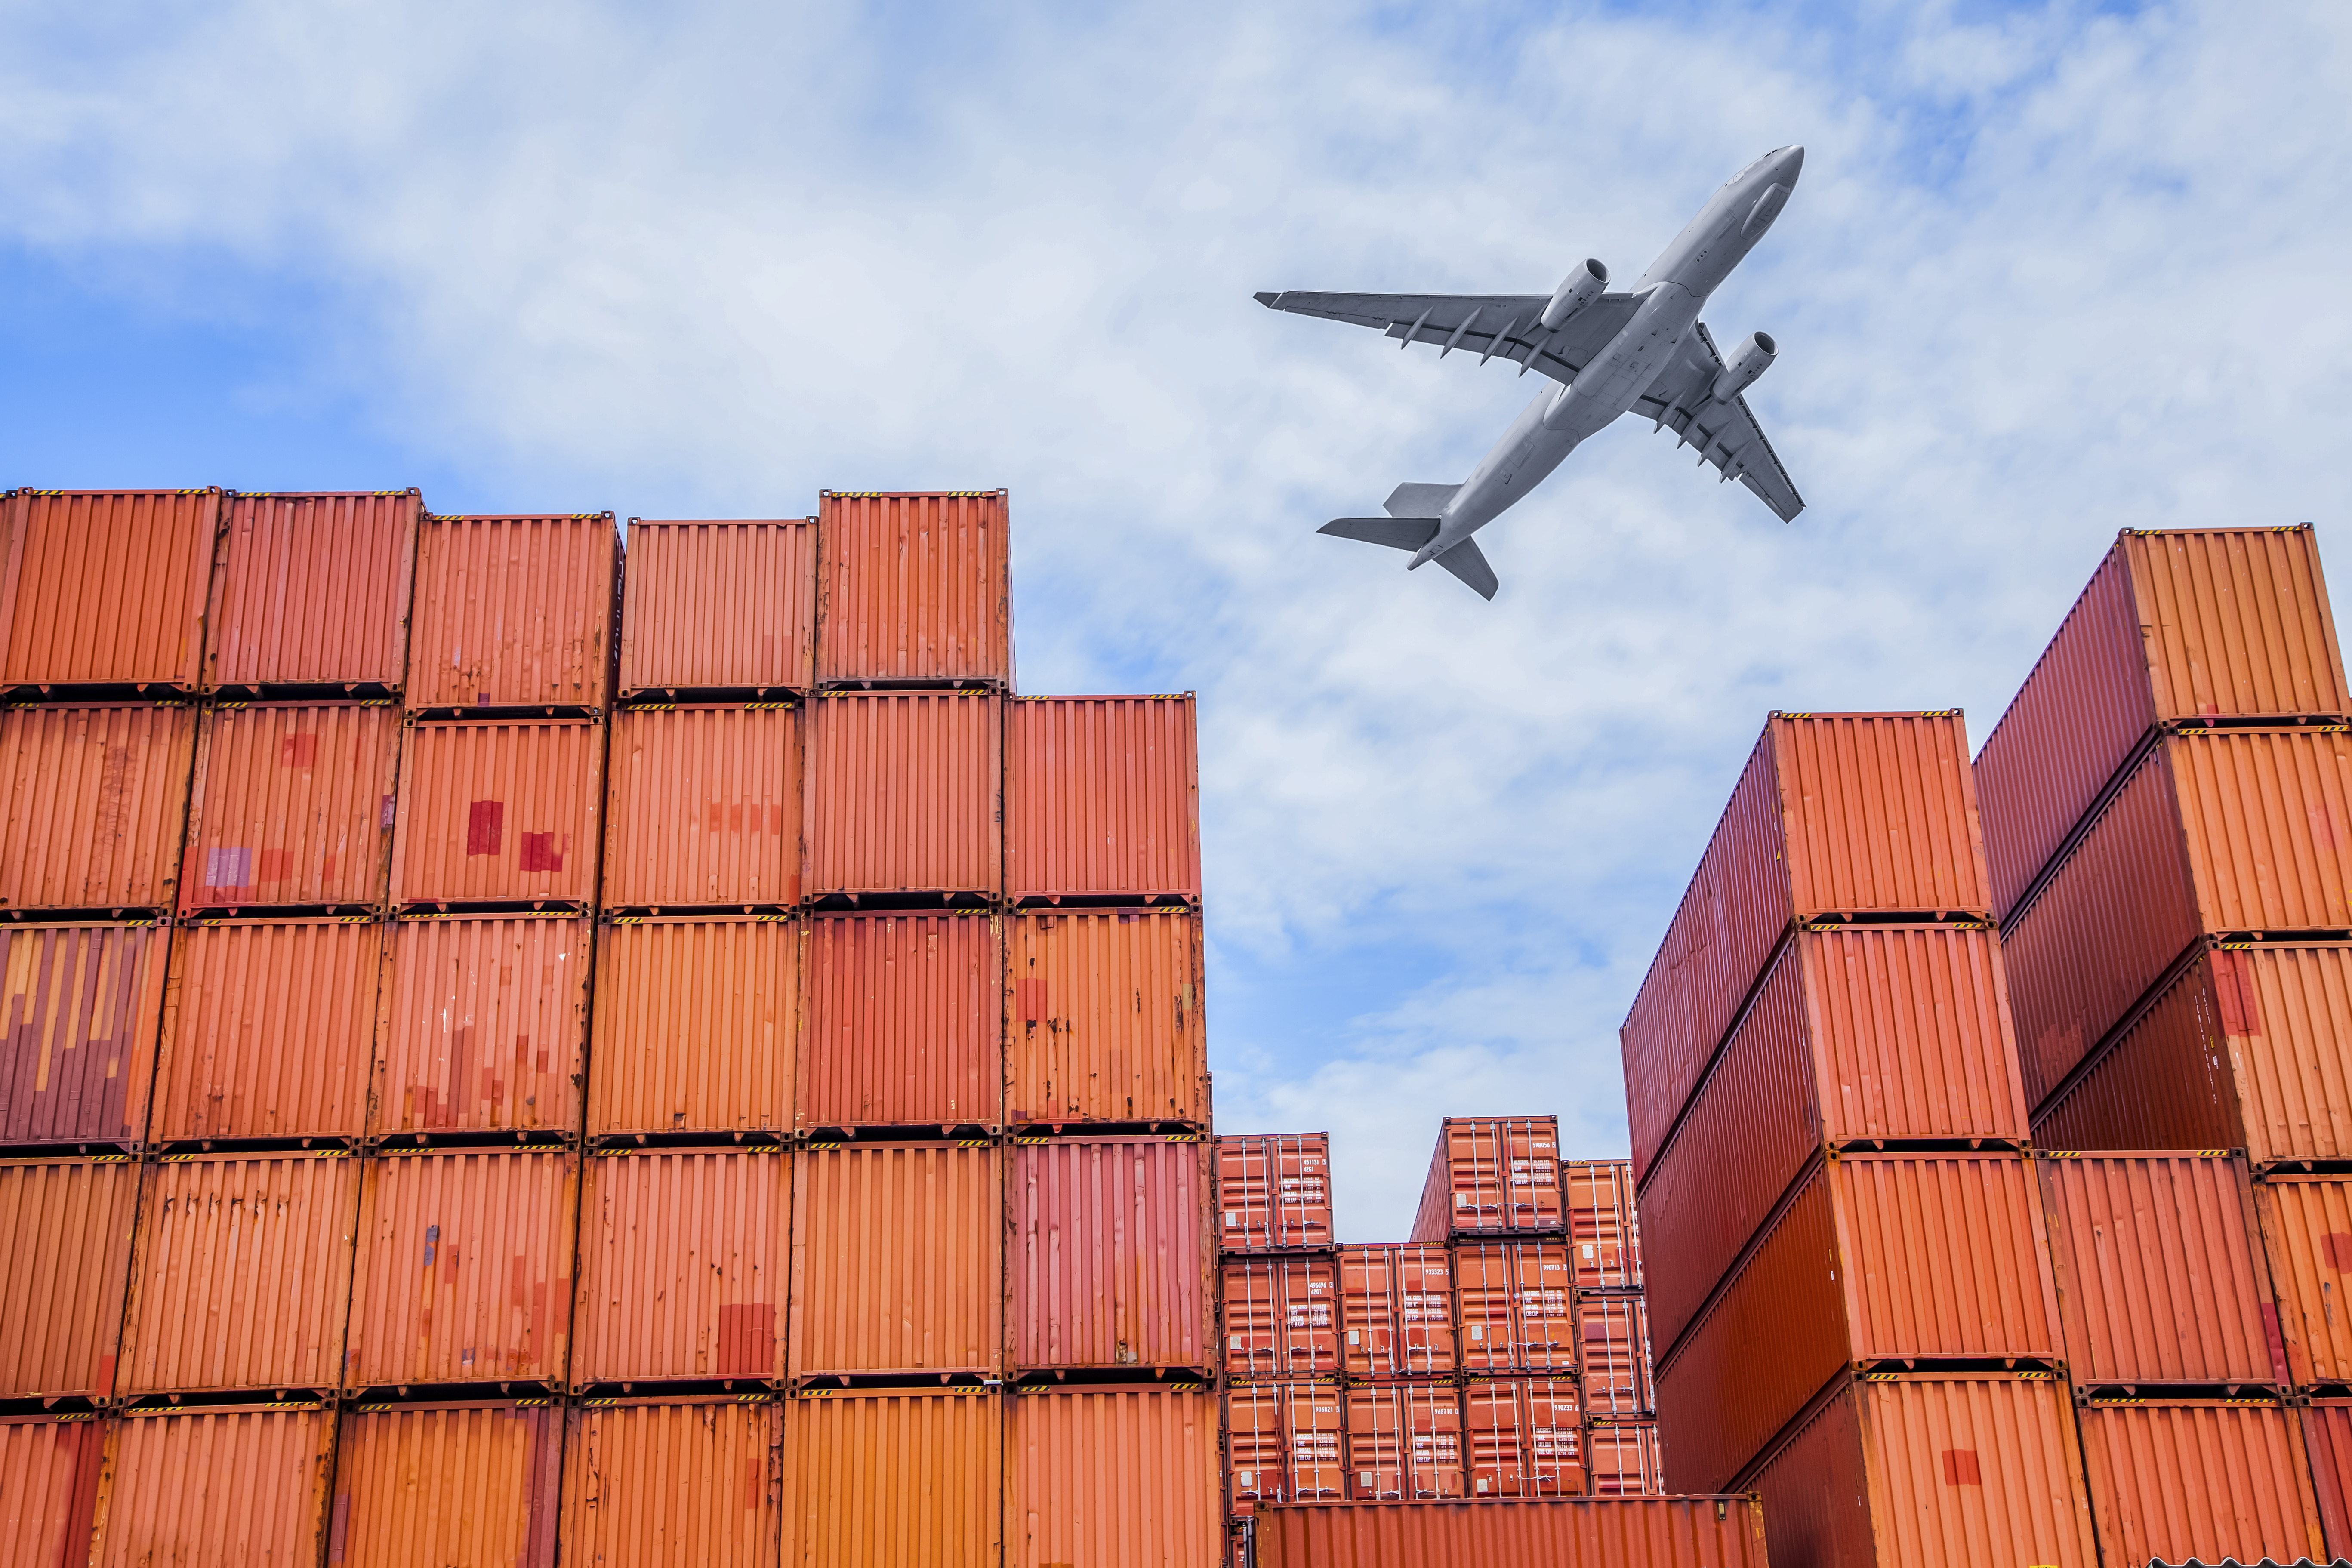 Container and a plane - business - ship - shipping